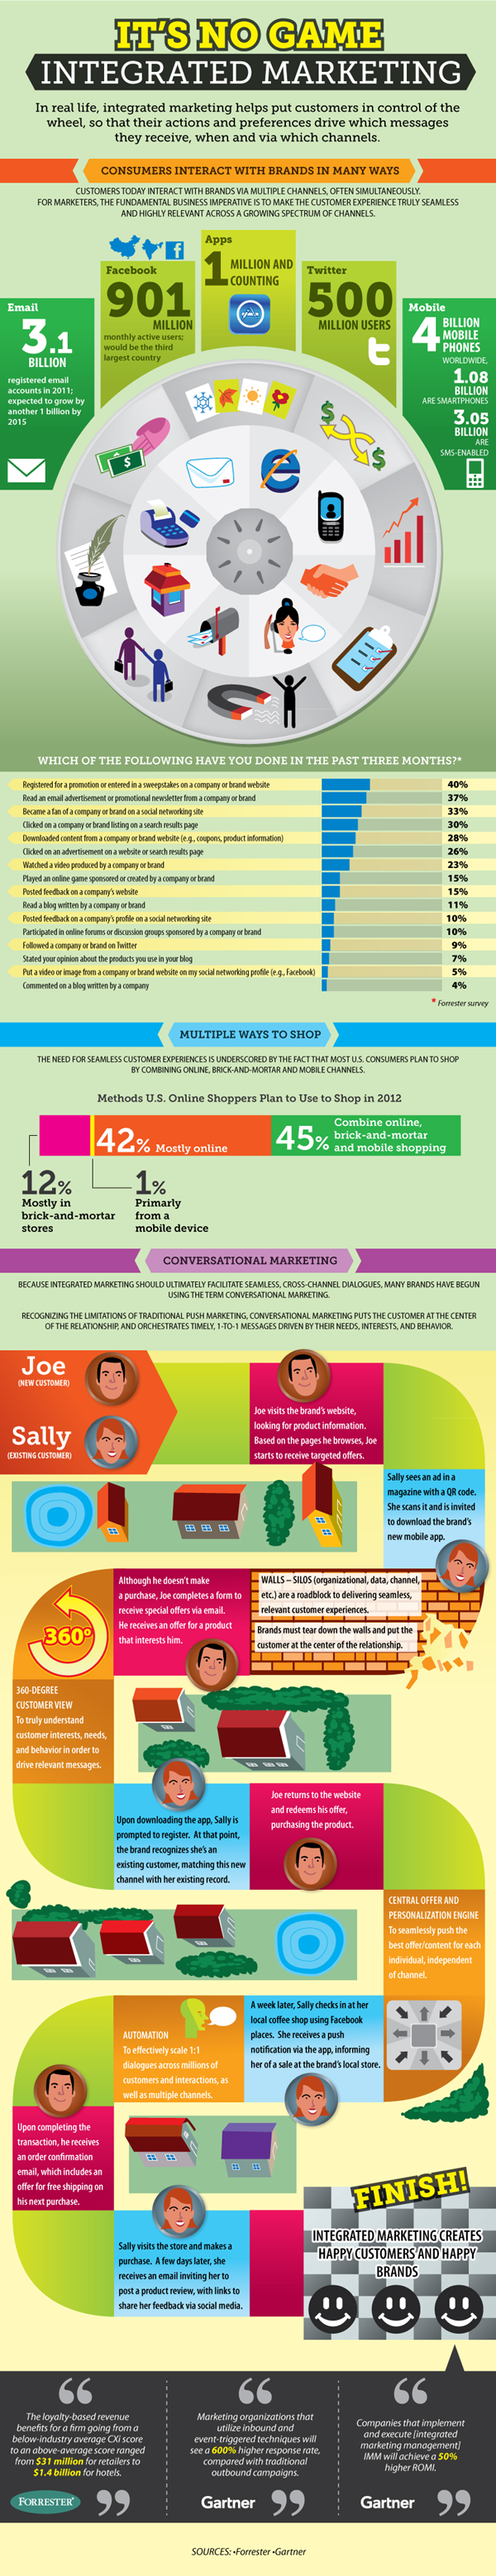 Integrated Marketing Facts